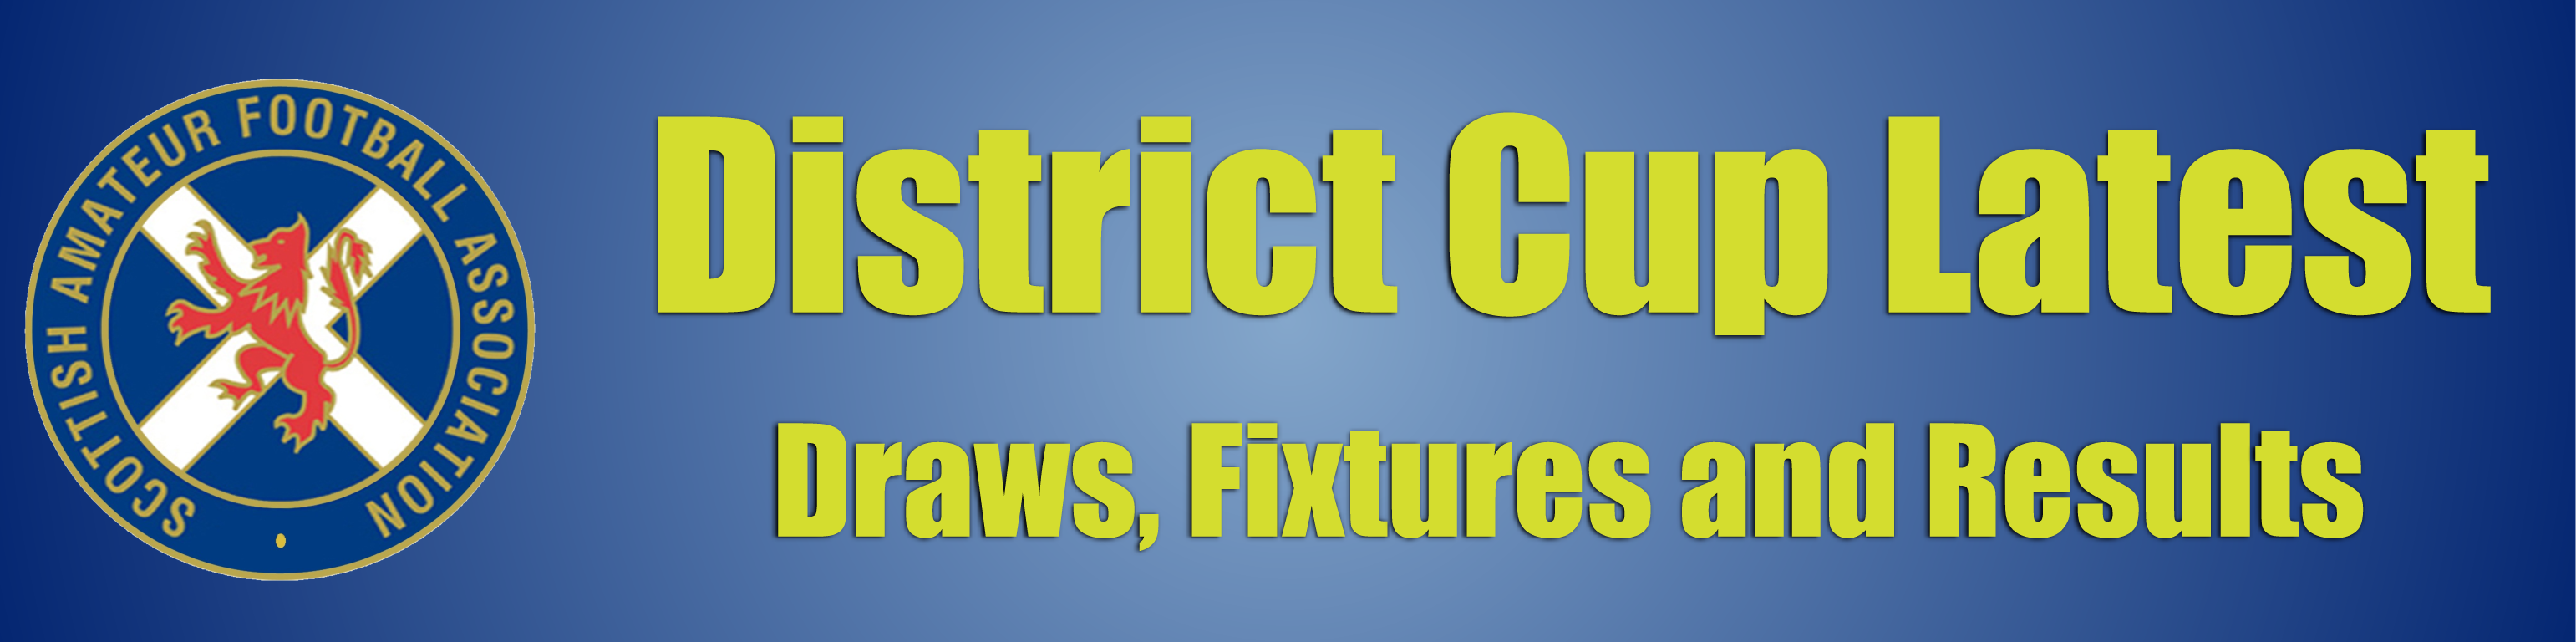 <a href='/newsdetail/ID/563'>District Cup Latest (Draws, Fixtures and Results)</a>